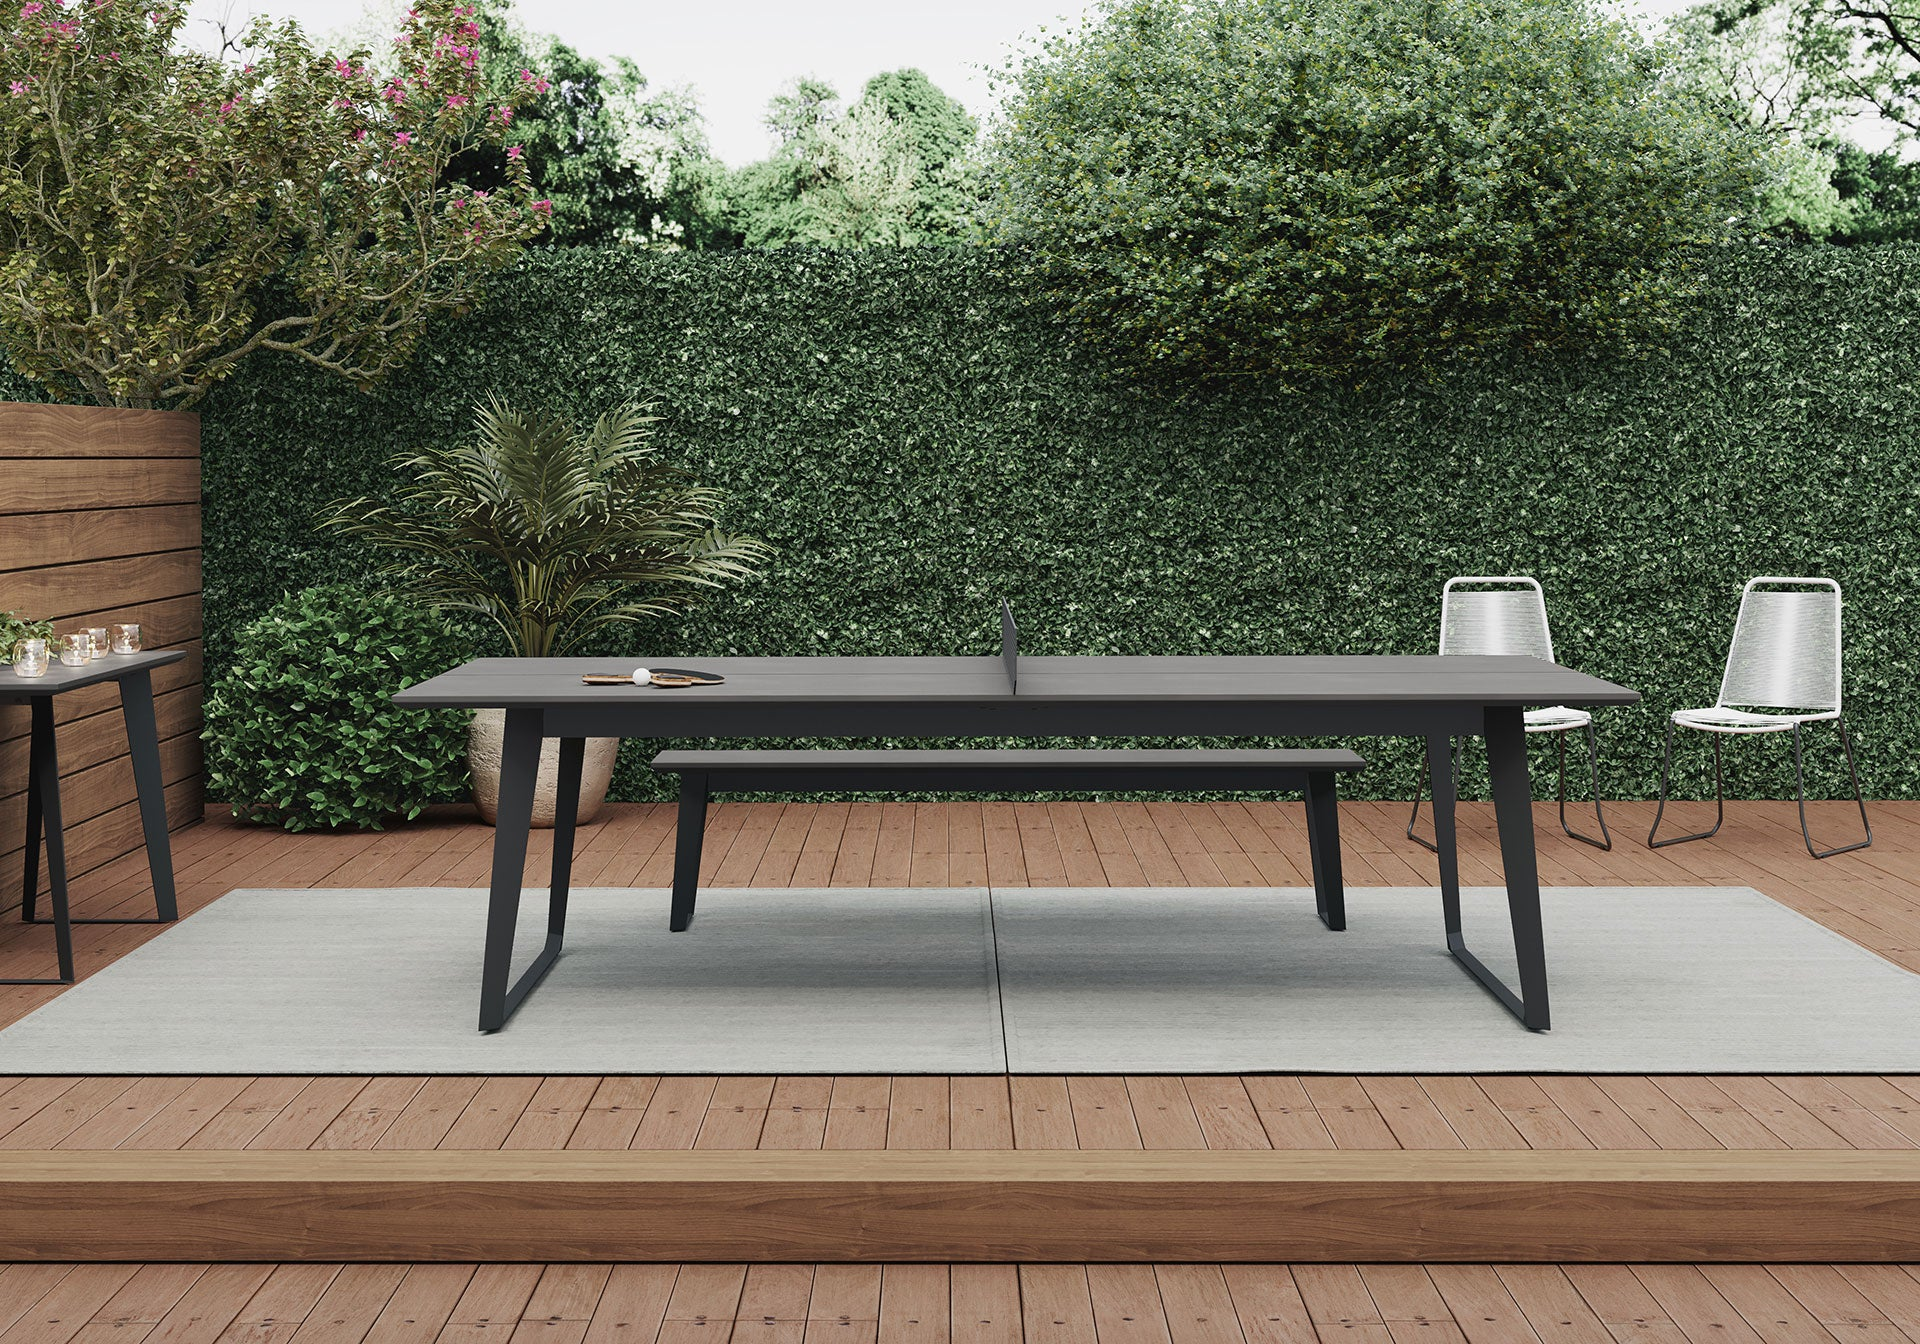 Modloft amsterdam outdoor ping pong table